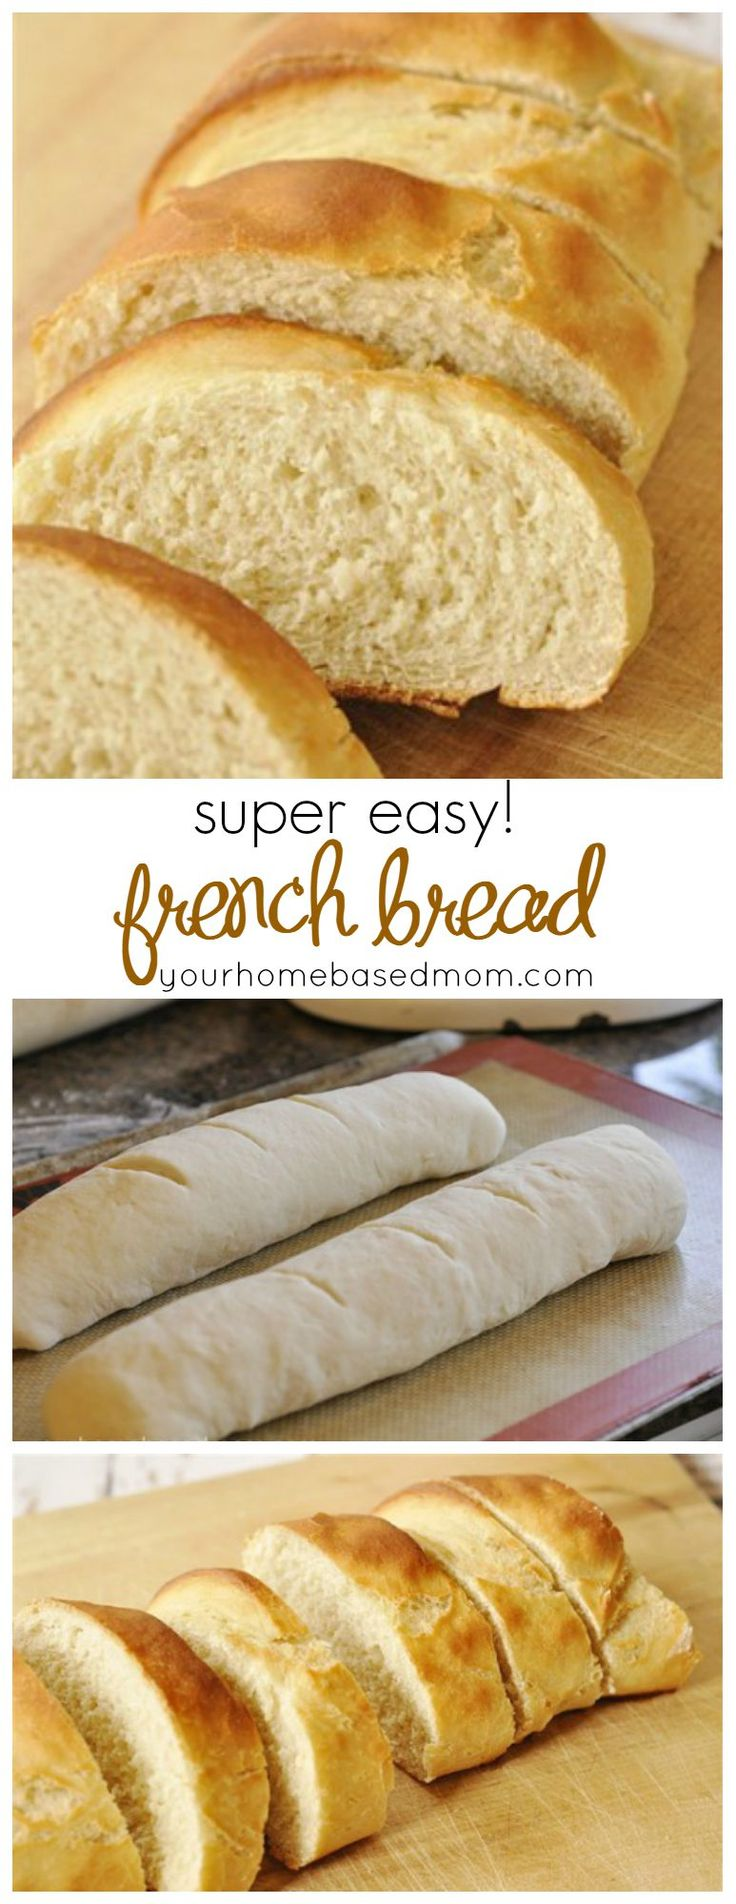 Homemade French Bread - YUM!